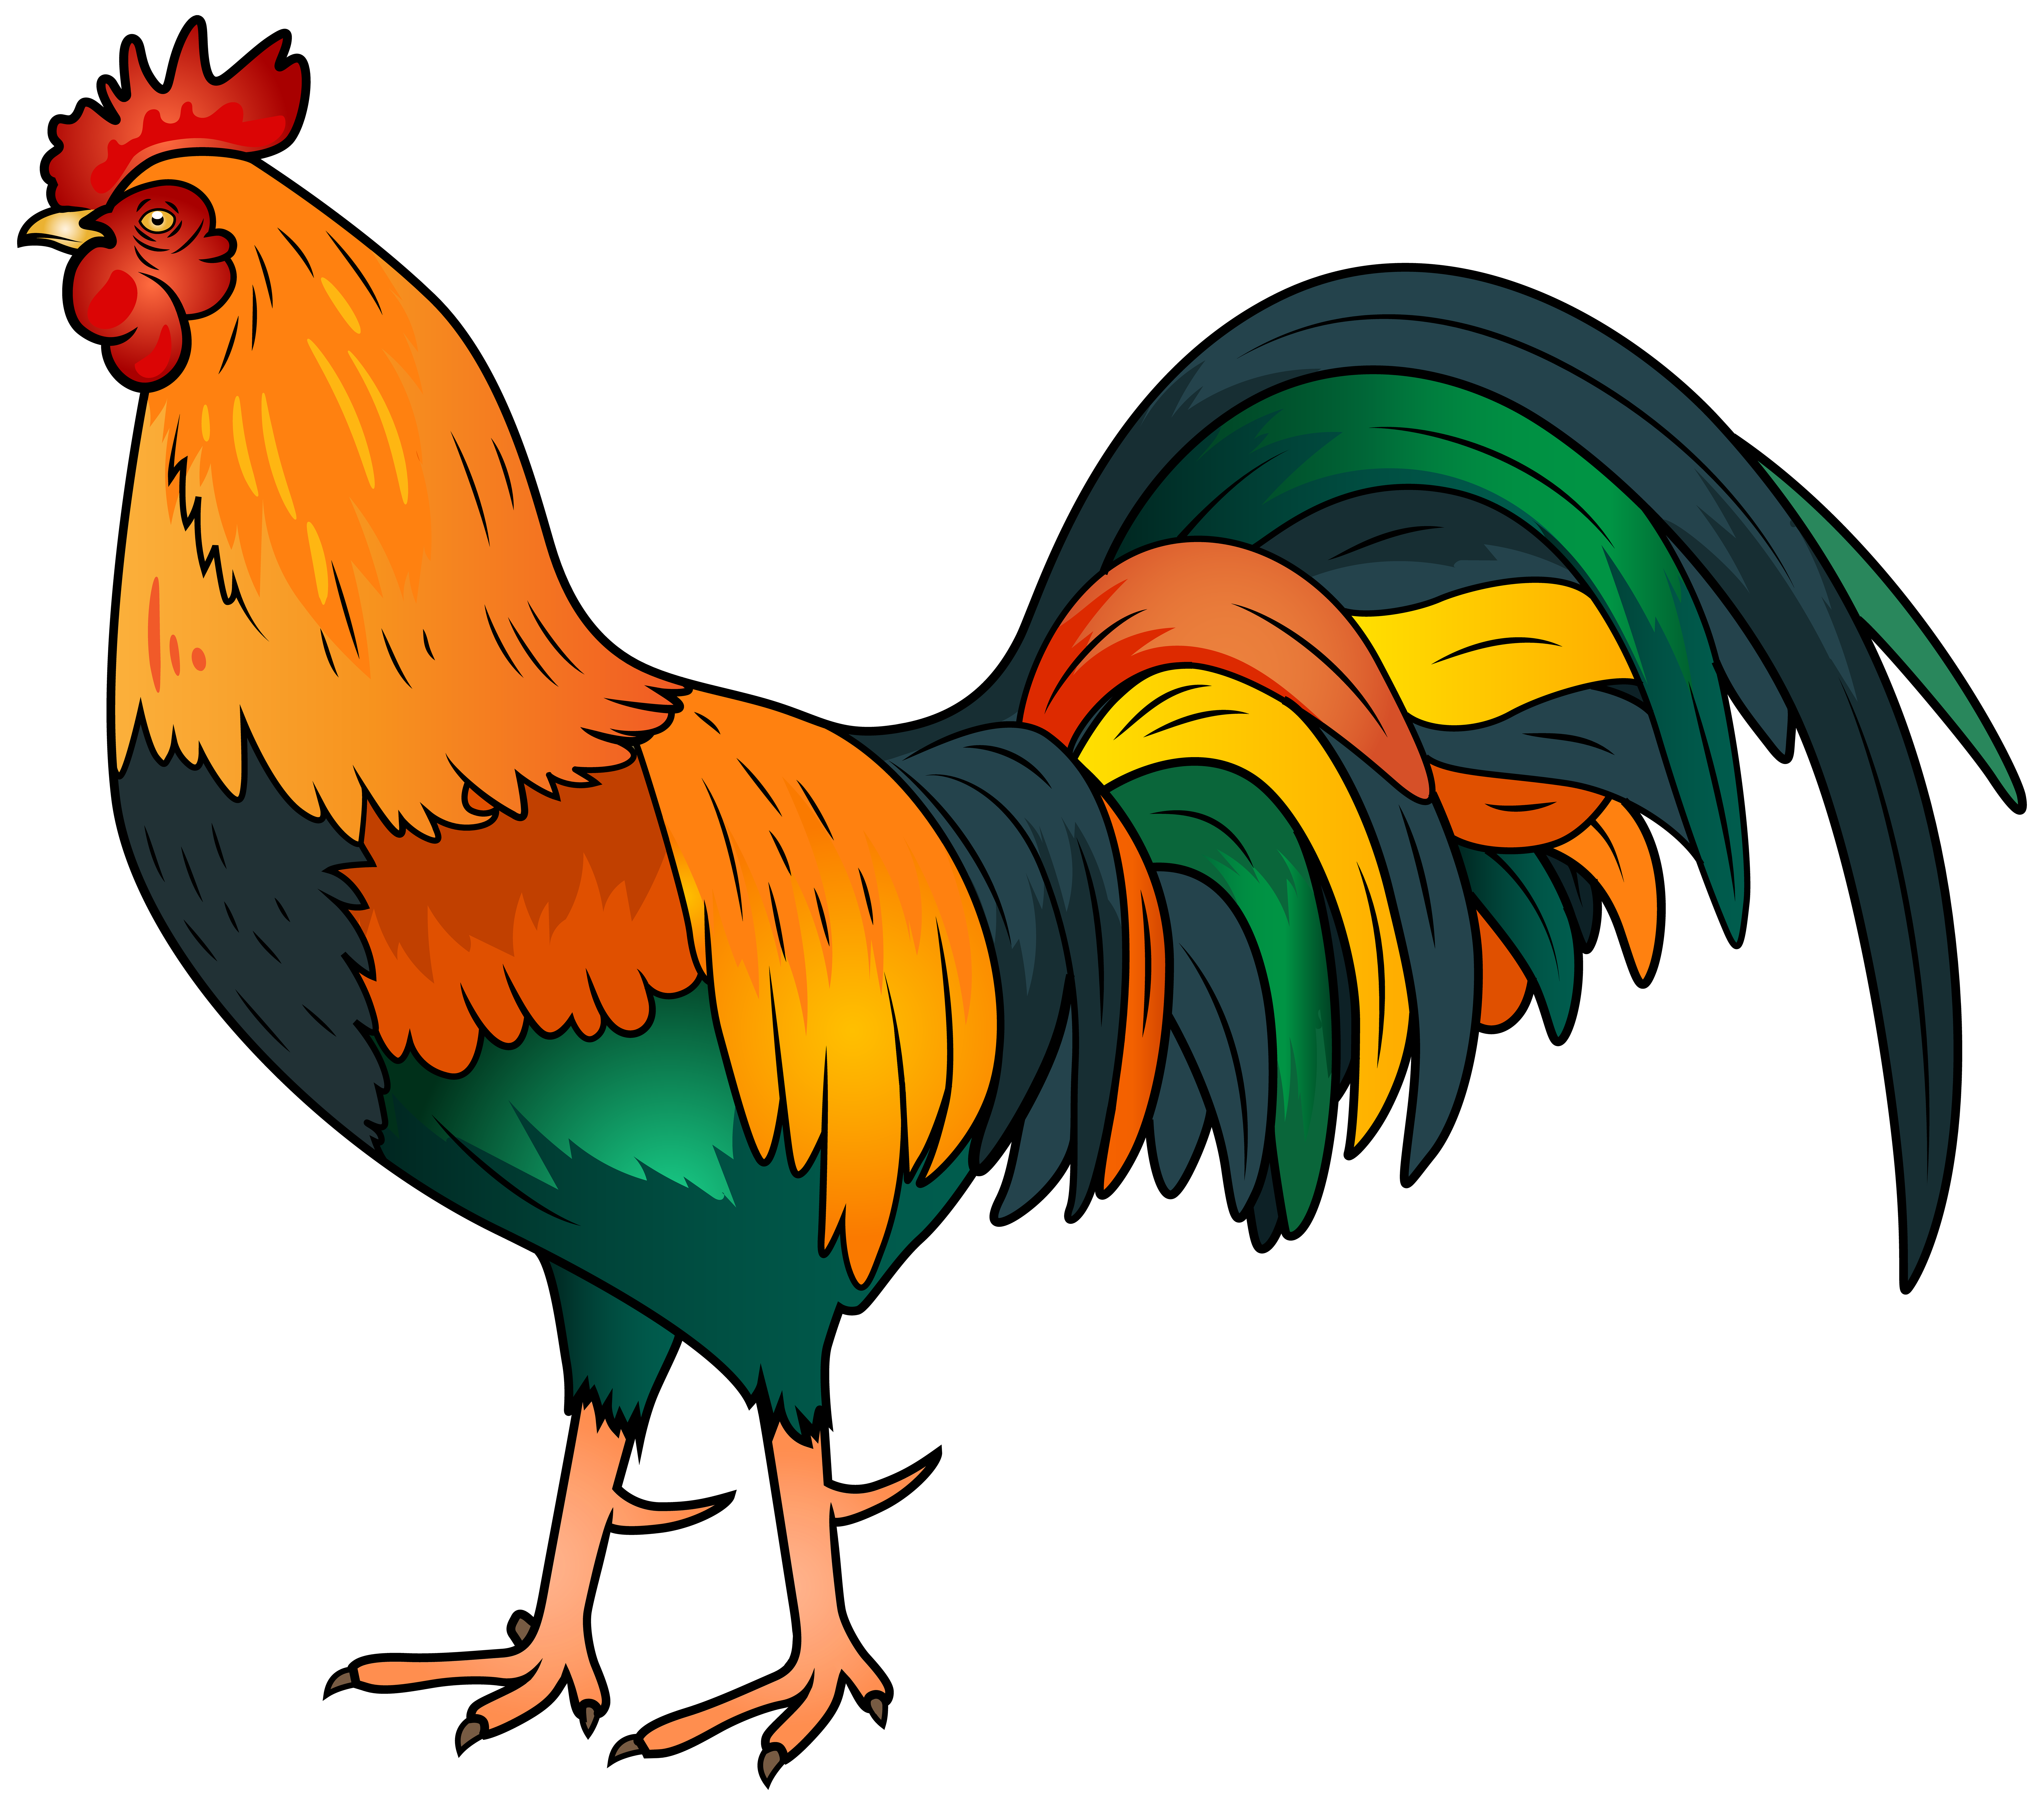 Png clip art image. Rooster clipart graphic royalty free library